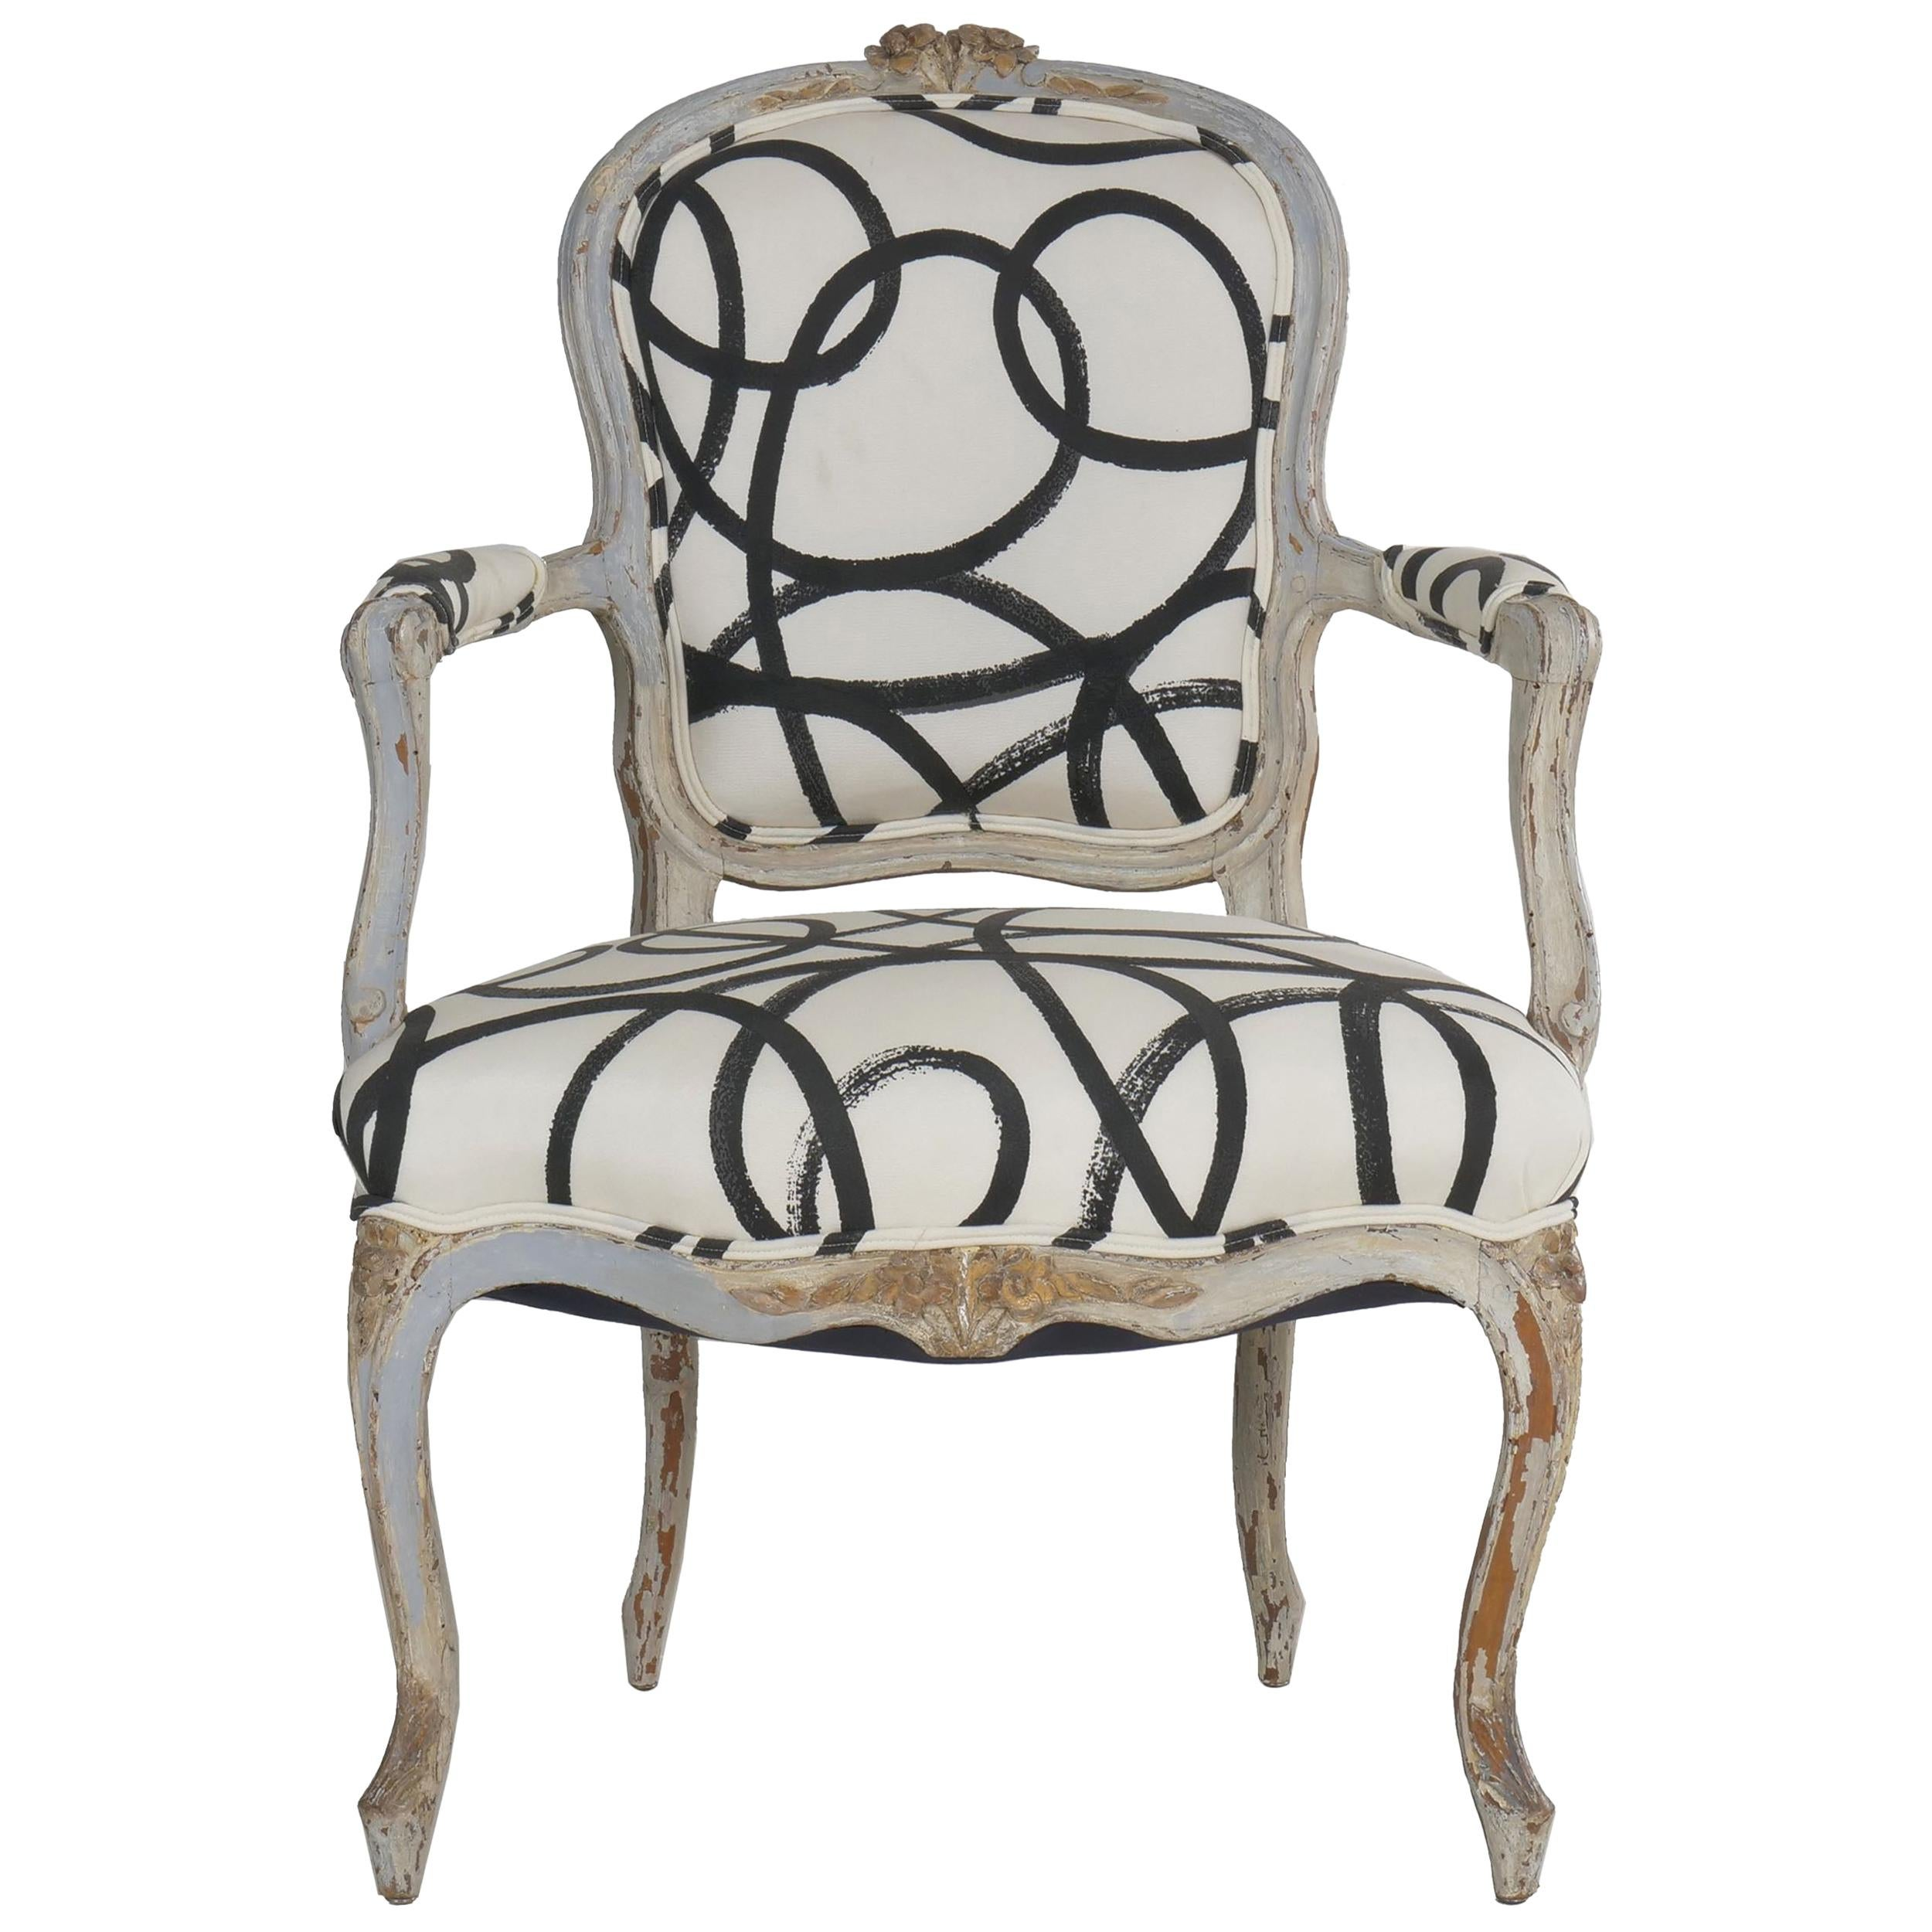 18th Century Louis XV Period French Antique Armchair with Modern Upholstery